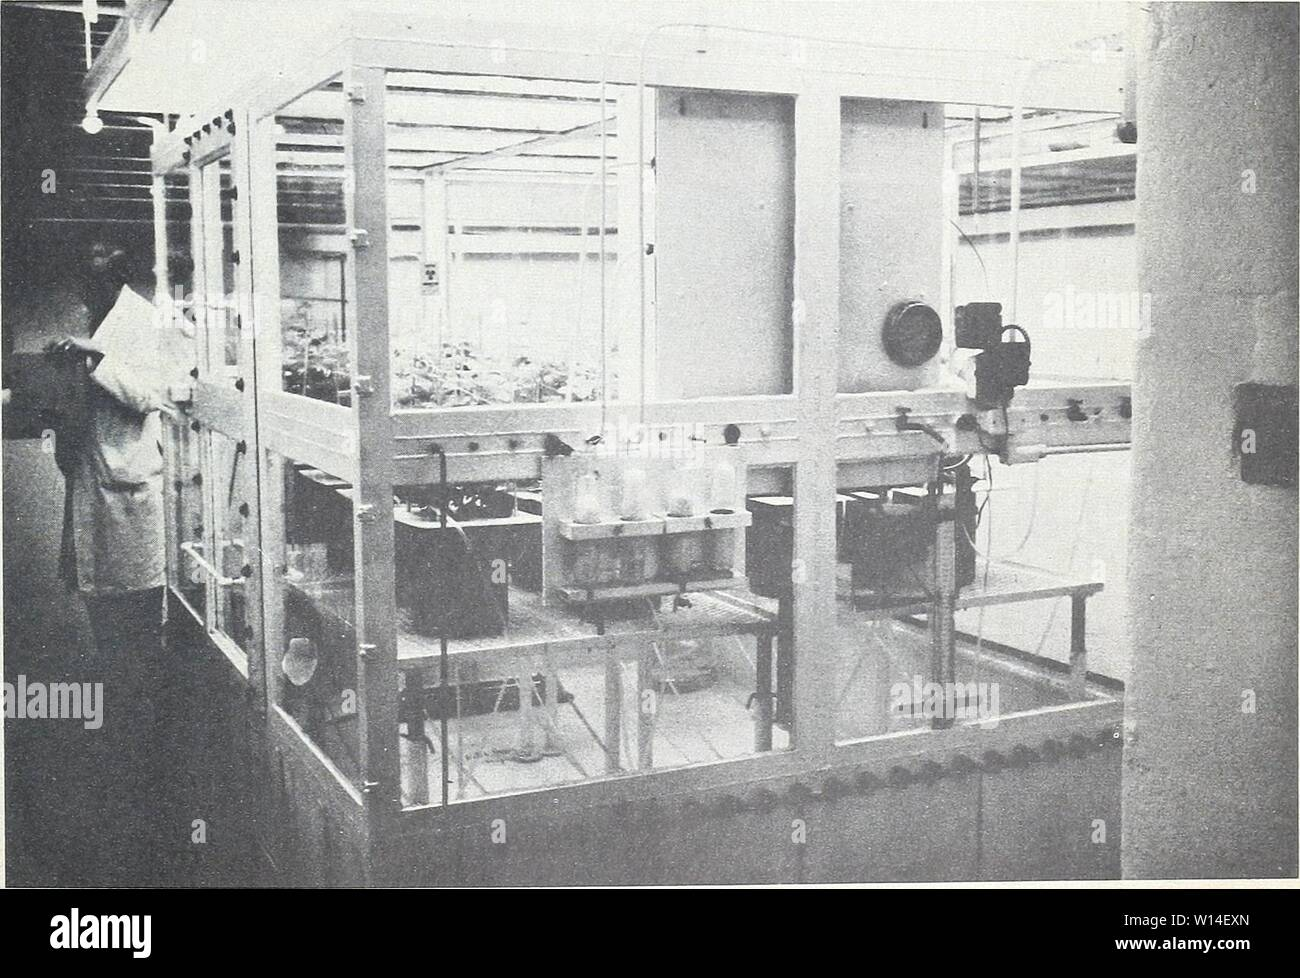 Archive image from page 12 of Design and operation of a. Design and operation of a carbon-14 biosynthesis chamber . designoperationo911smit Year: 1962  ±4 inches of water was created by a 3° F. tem- perature variation. A safety valve was designed to prevent greater fluctuations (fig. 10). The de- irice was composed of two vessels containing so- dium hydroxide solution to the level that pressure inside the chamber or outside would force air through the safety valve at a rate great enough to prevent dangerous pressure buildup. Air pass- ing through the trap was washed free of C02 and radioactivi - Stock Image